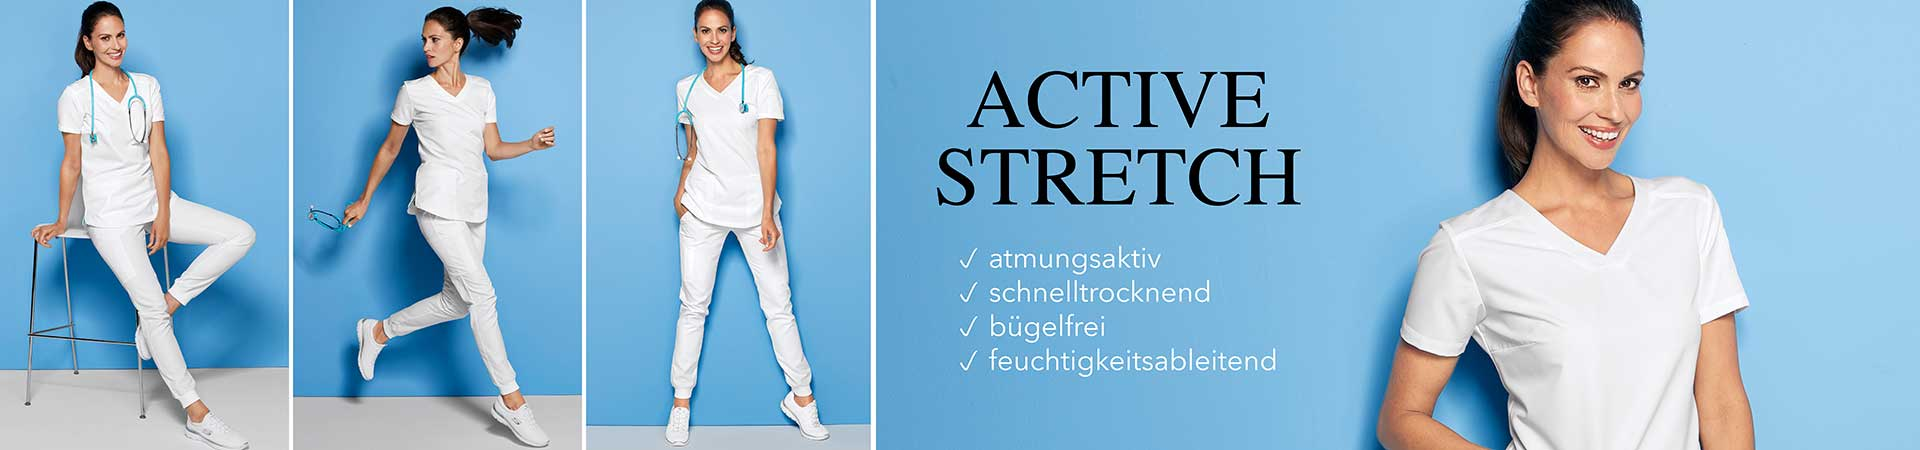 Teambekleidung Activestretch